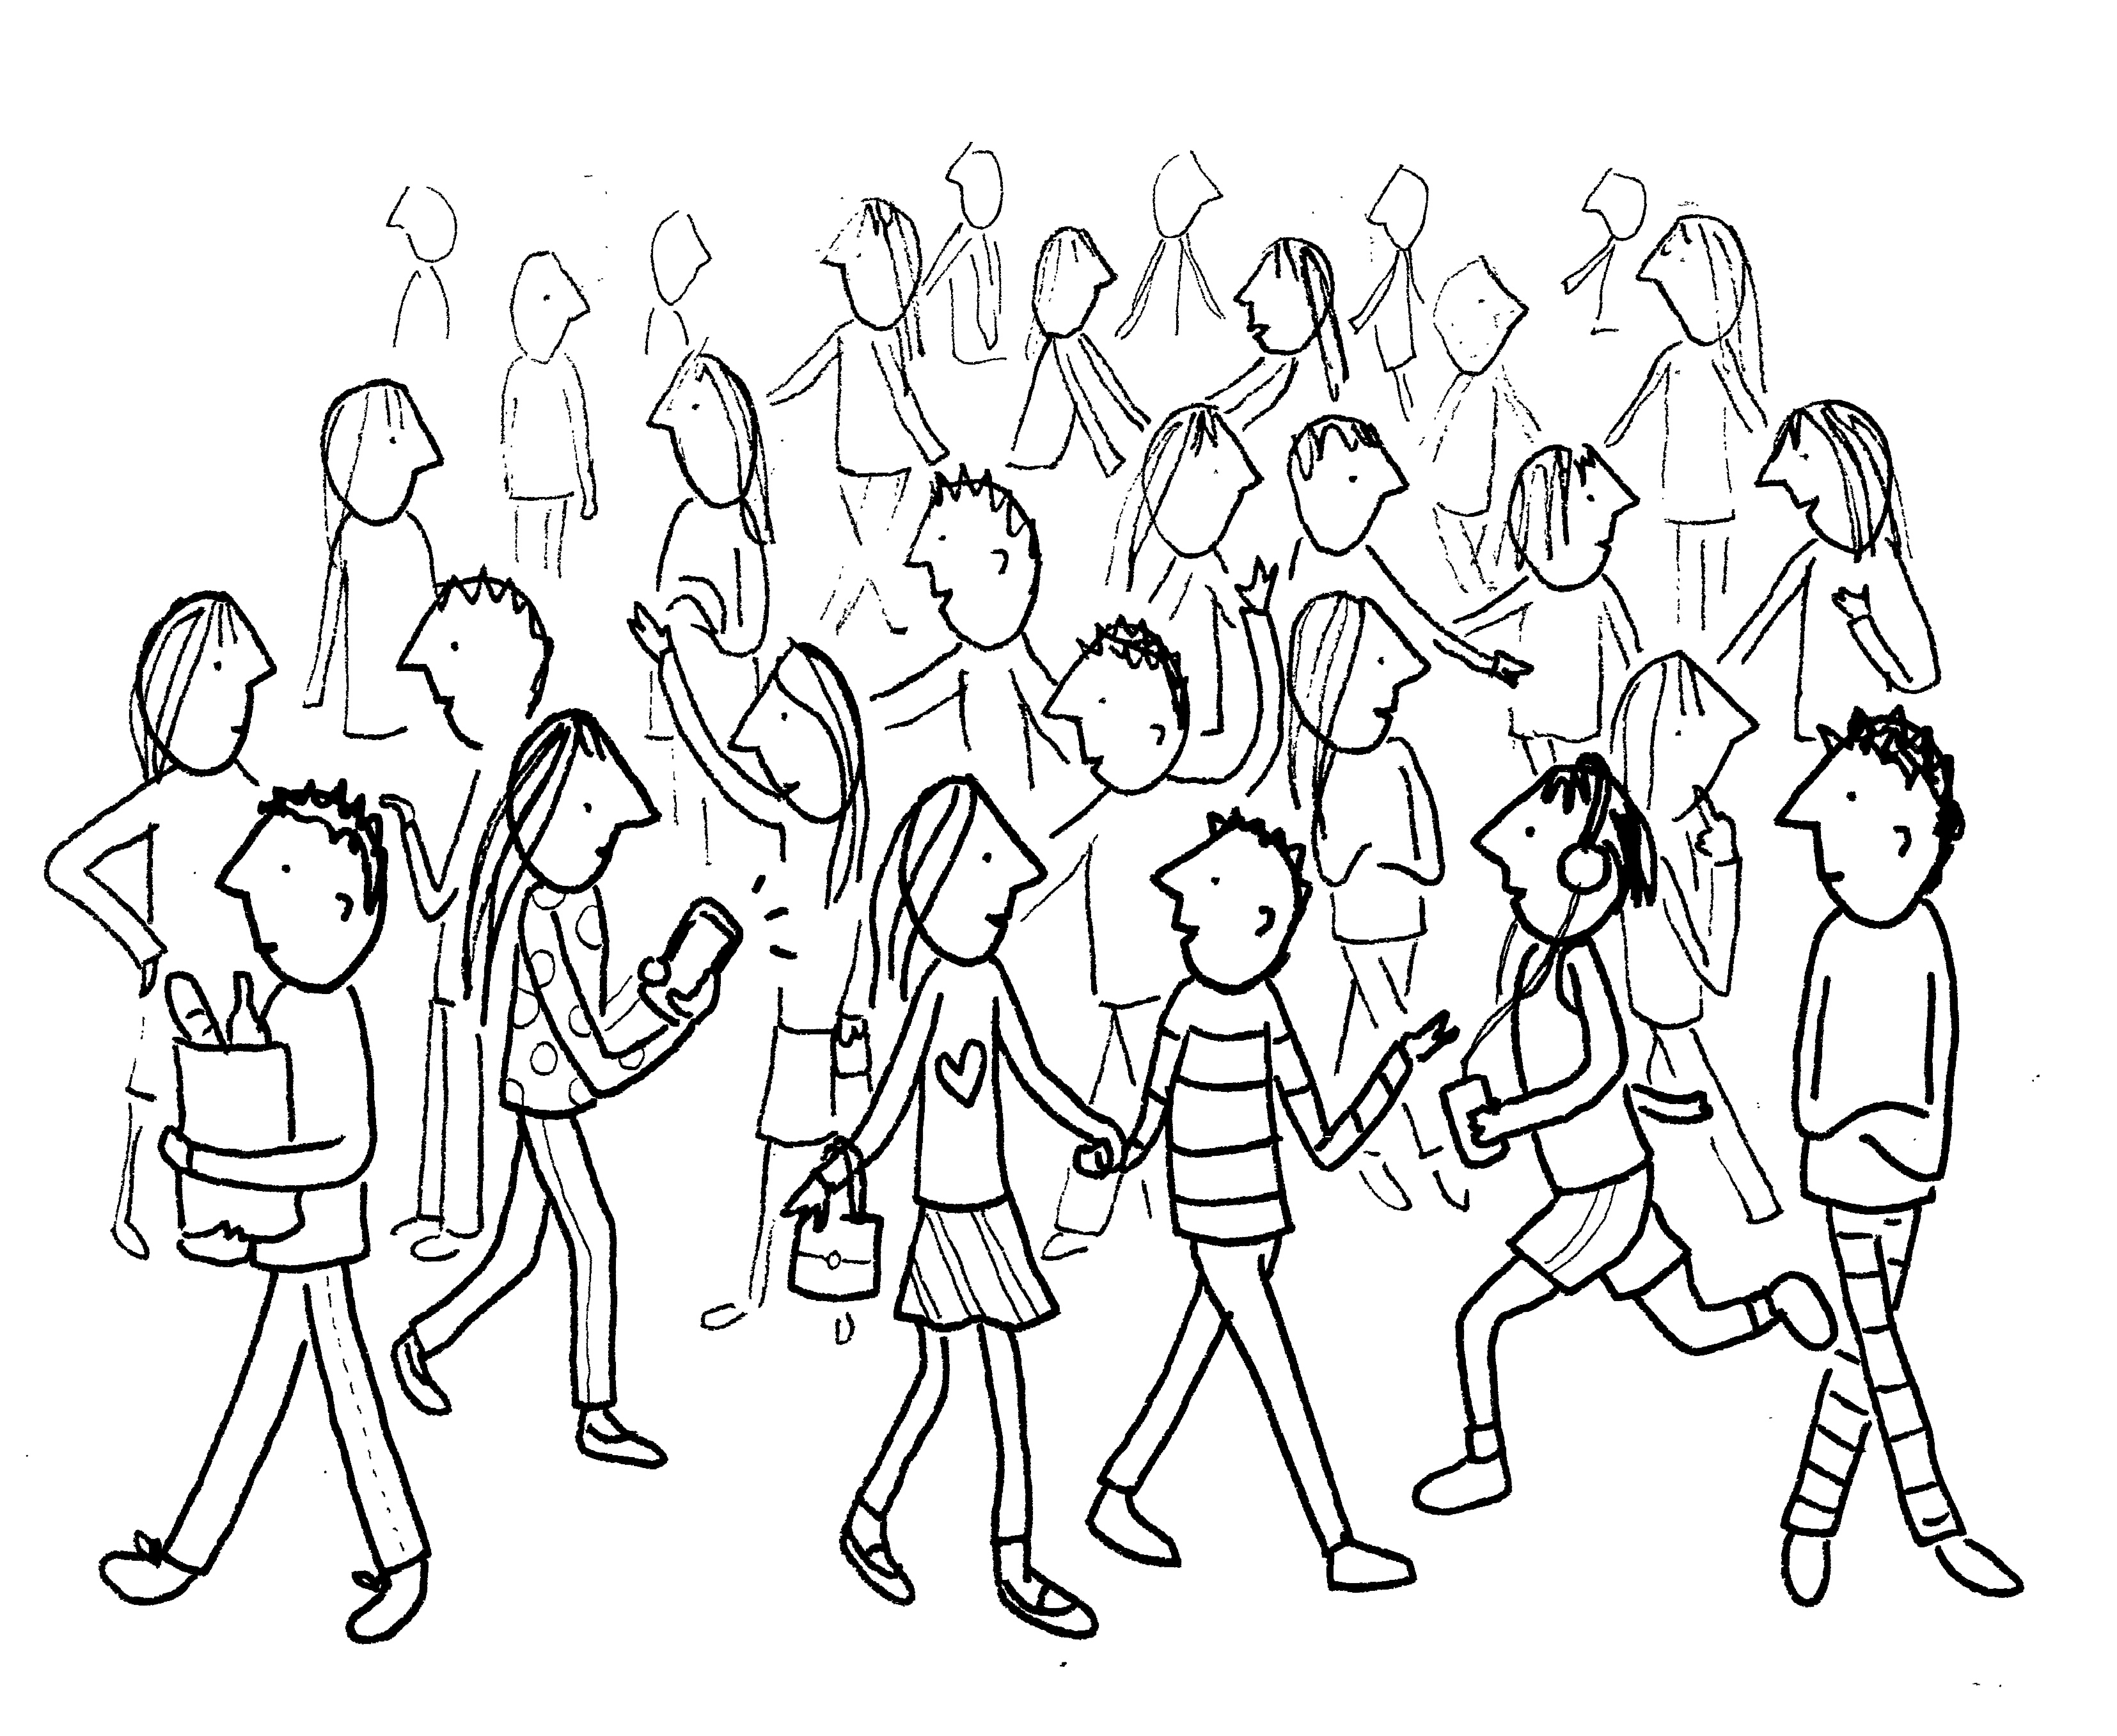 how to draw a crowd  some tips to get you going